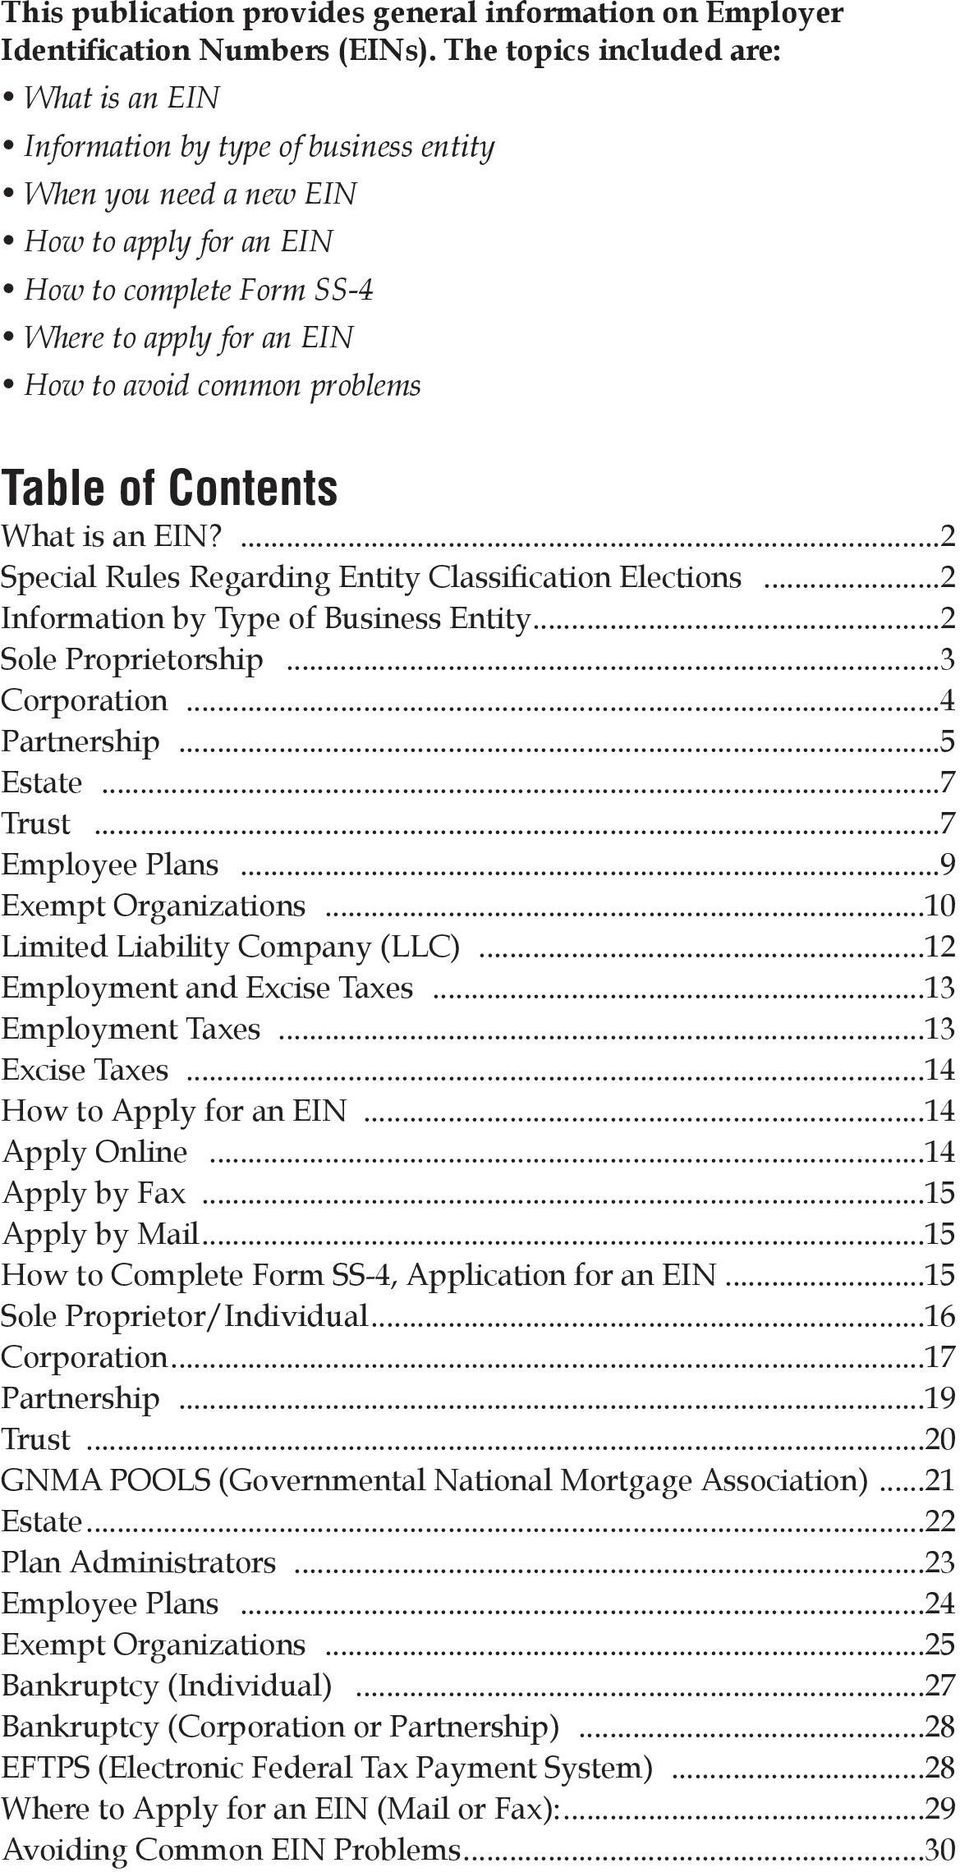 problems Table of Contents What is an EIN?...2 Special Rules Regarding Entity Classification Elections...2 Information by Type of Business Entity...2 Sole Proprietorship...3 Corporation...4 Partnership.